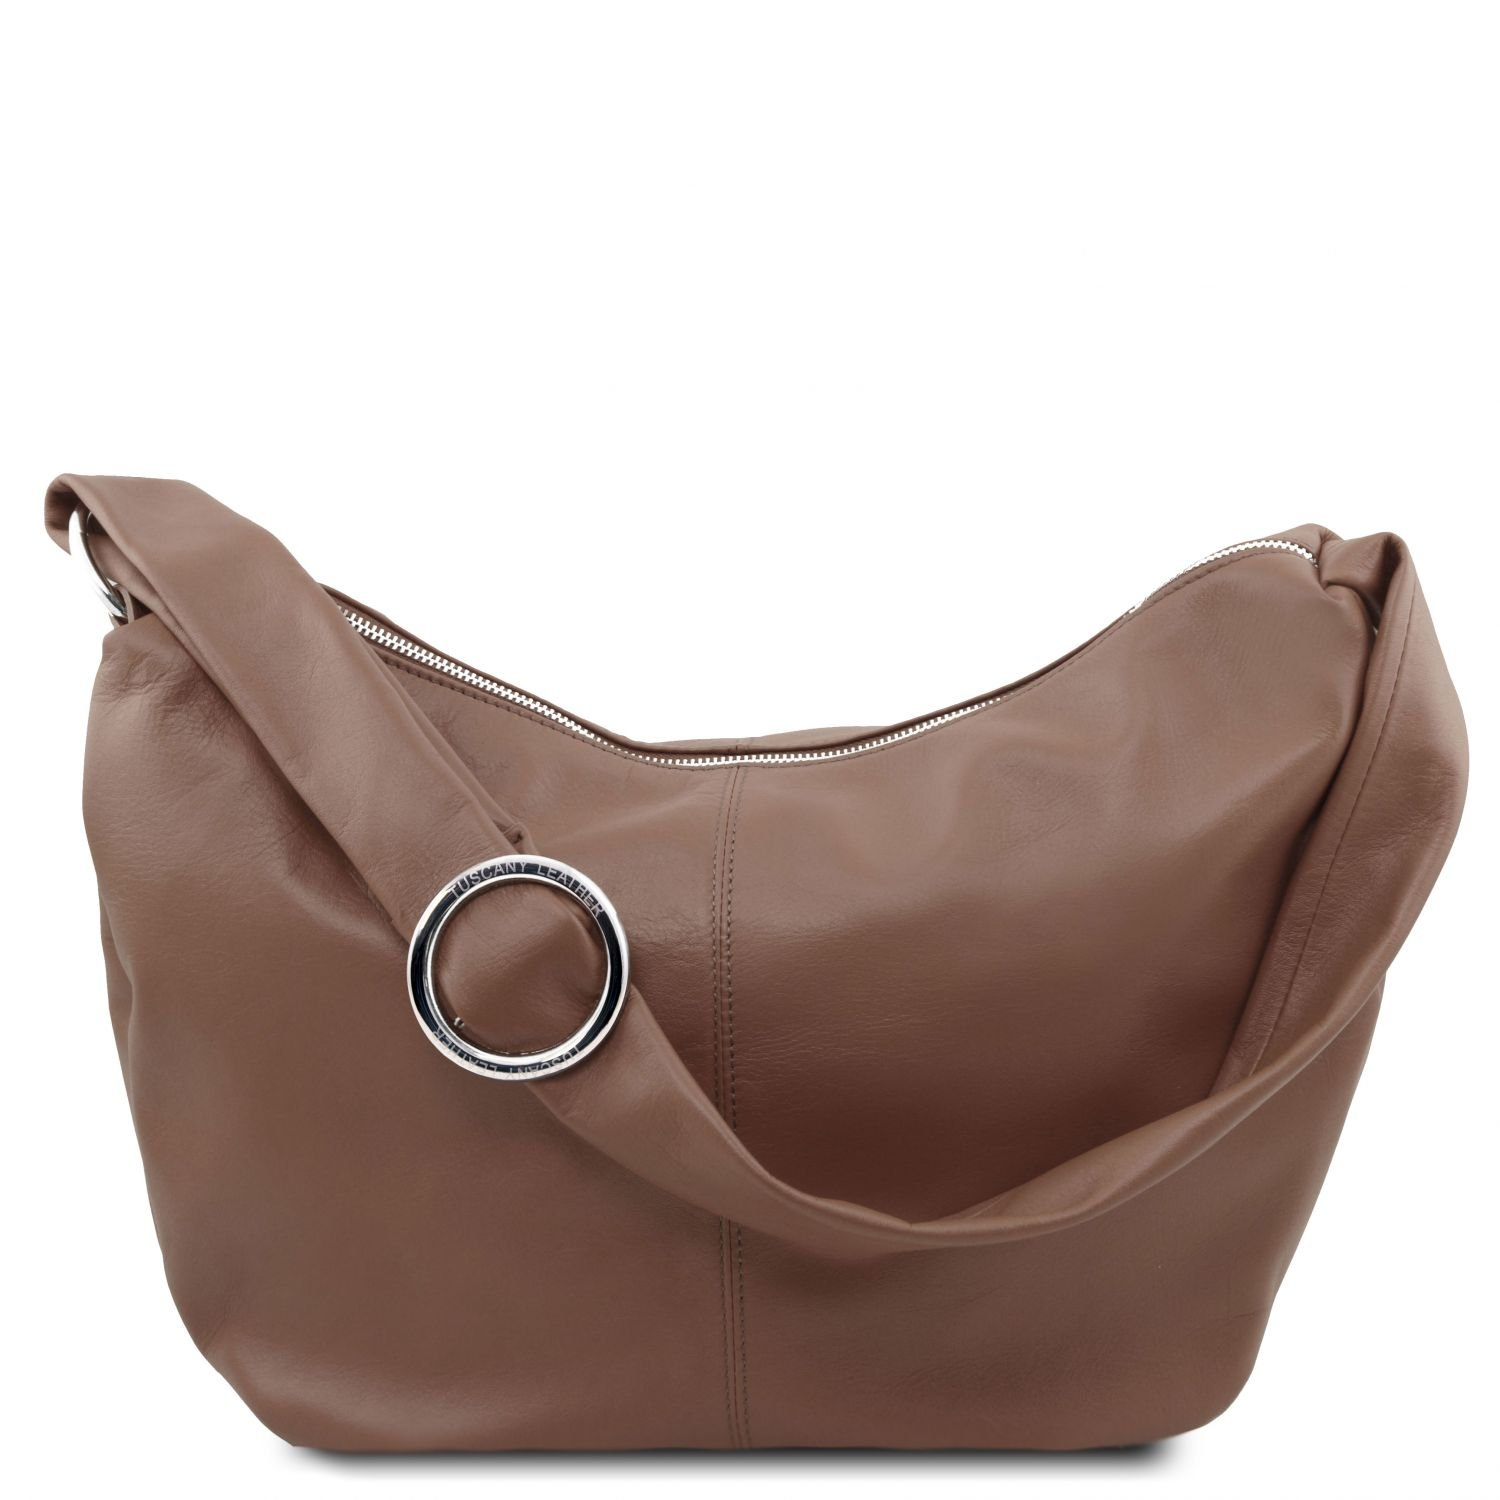 Tuscany Leather Yvette Leather hobo bag Dark Taupe Leather shoulder bags